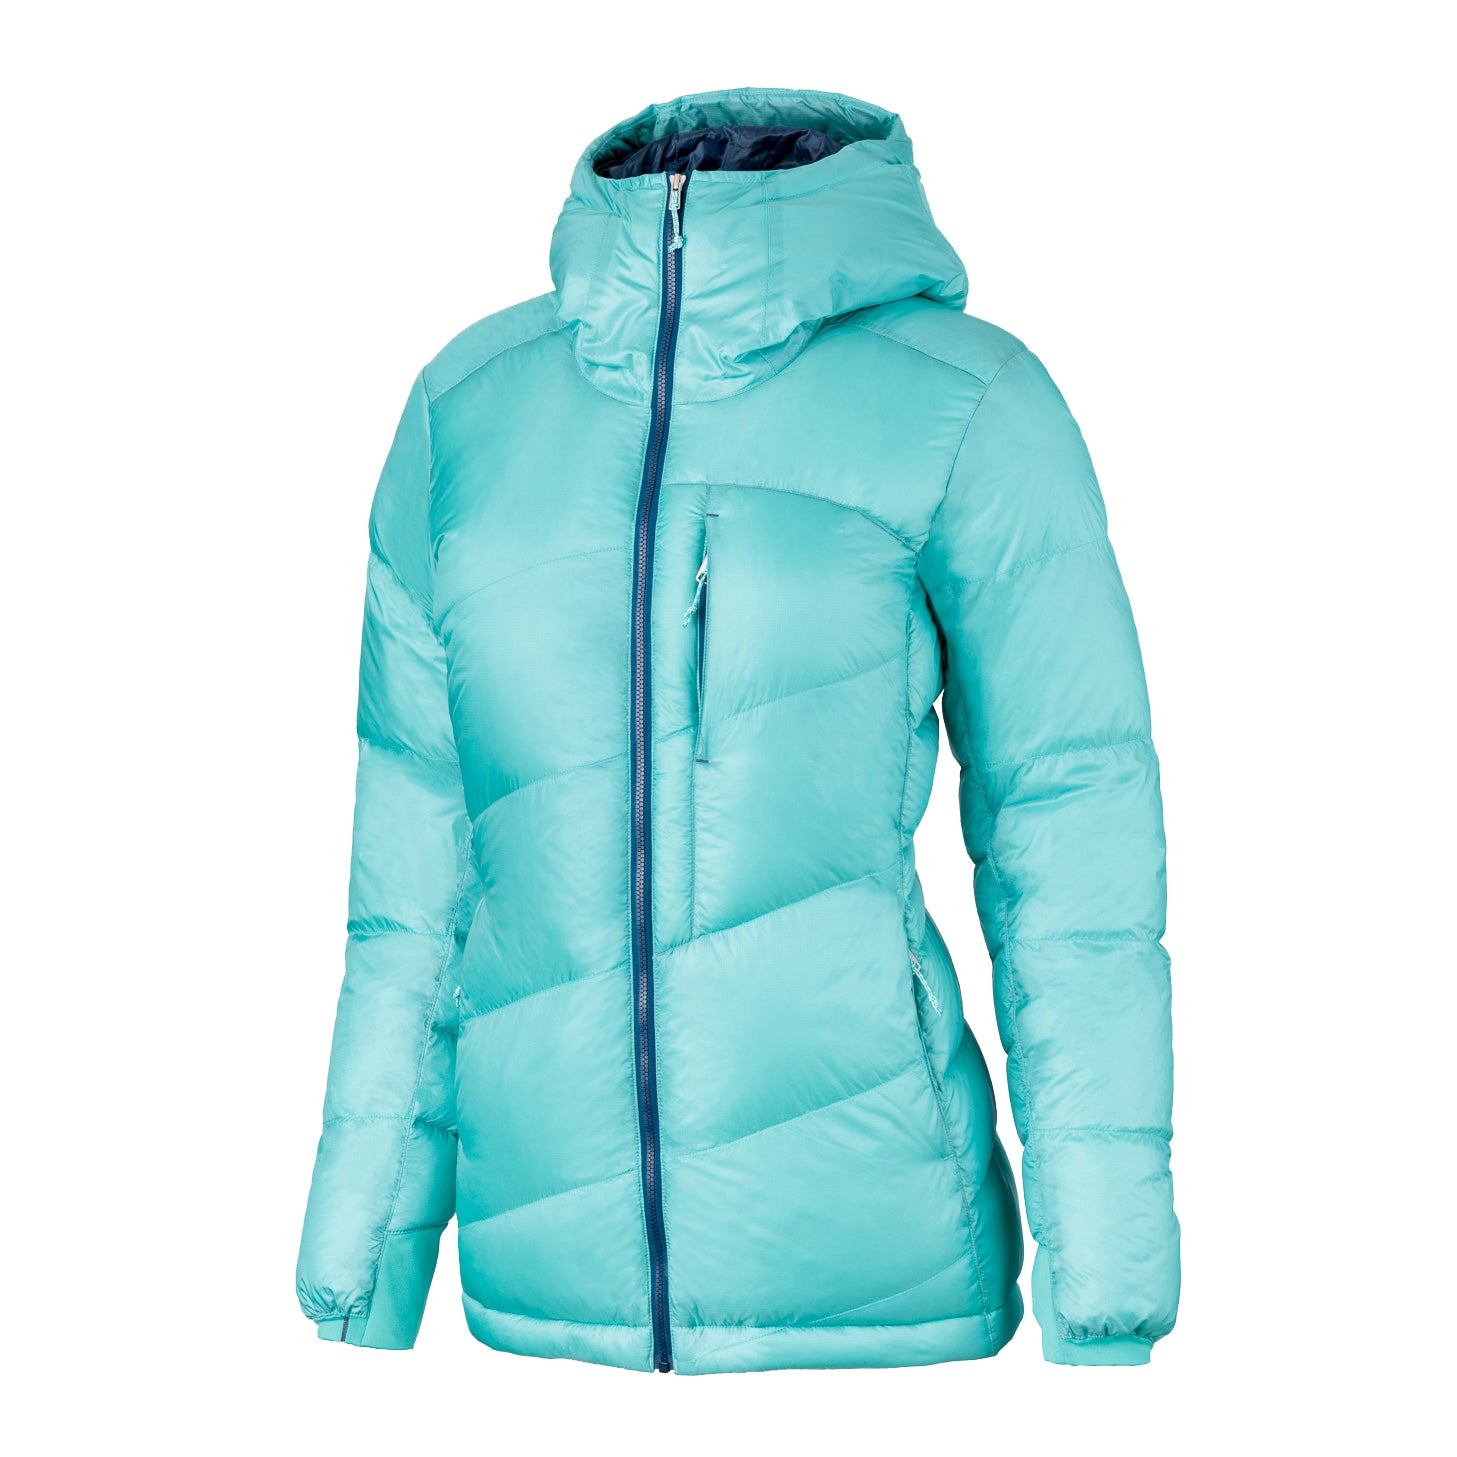 Women's Caldera Down Parka